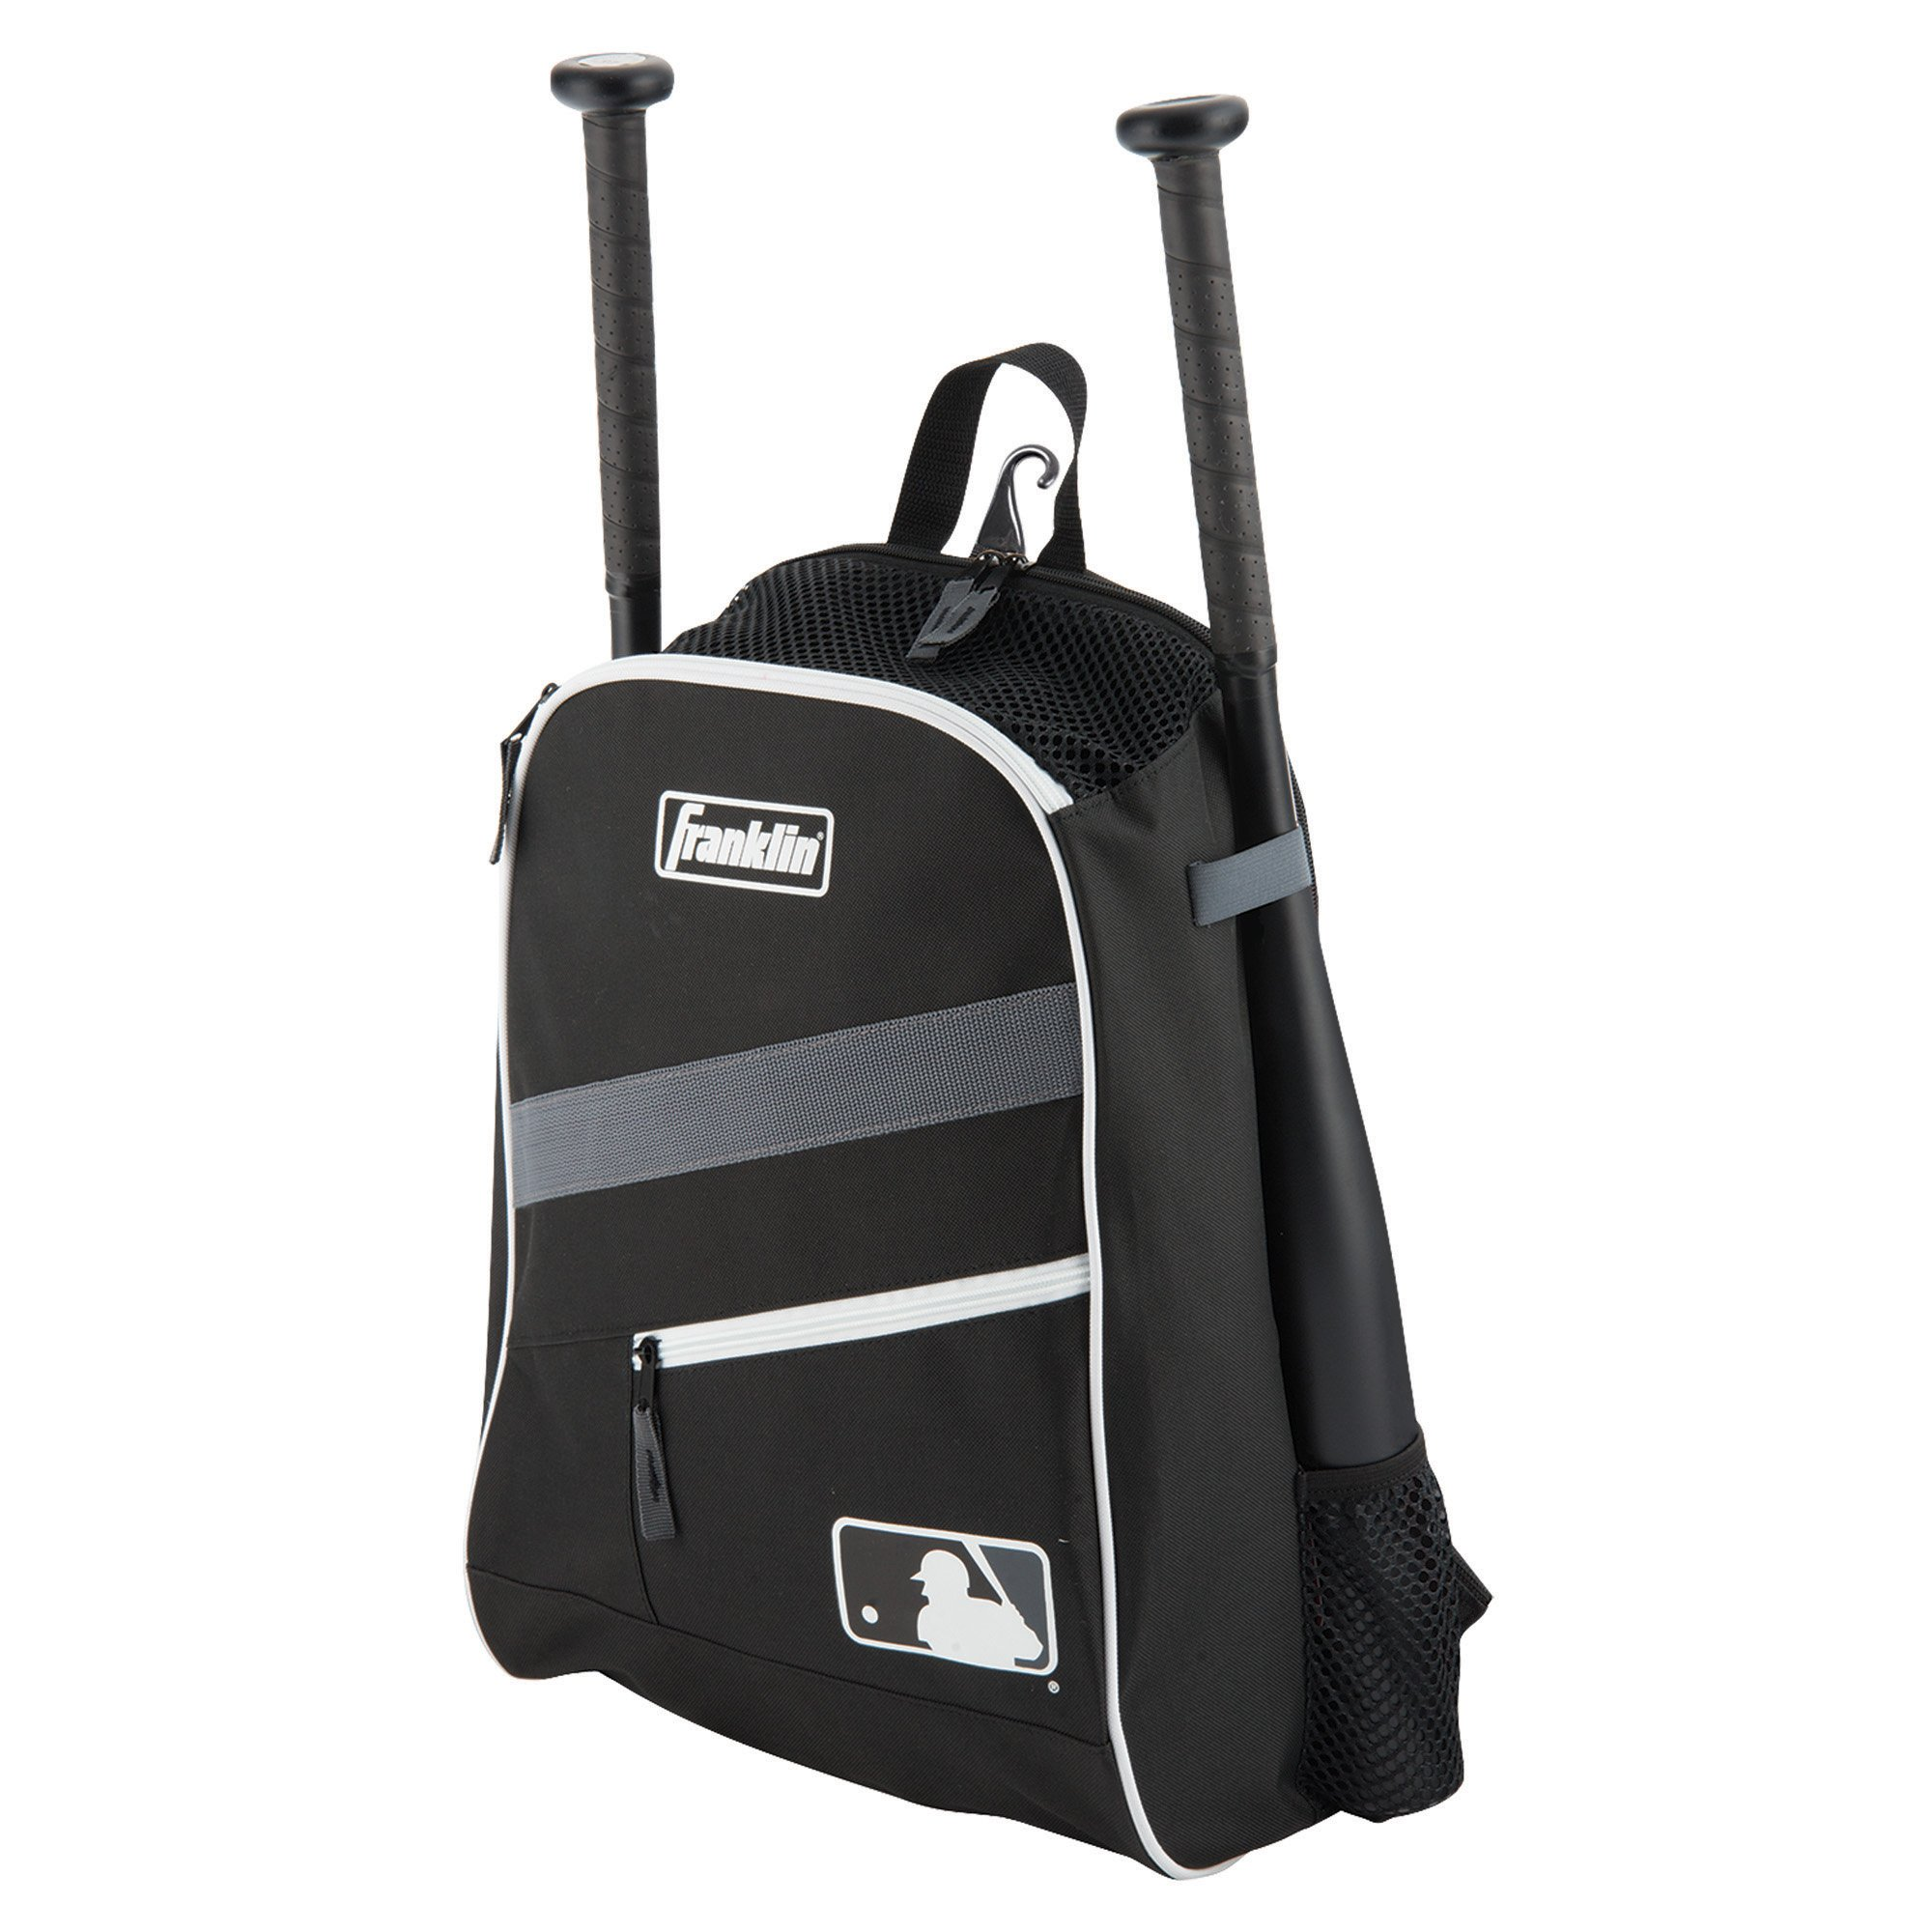 Franklin Sports MLB Batpack Bag - Youth Baseball, Softball and Teeball Bag - Equipment Bag for Sports - Bag Holds Bats (2) and Includes Fence Hook - Black/Grey/White by Franklin Sports